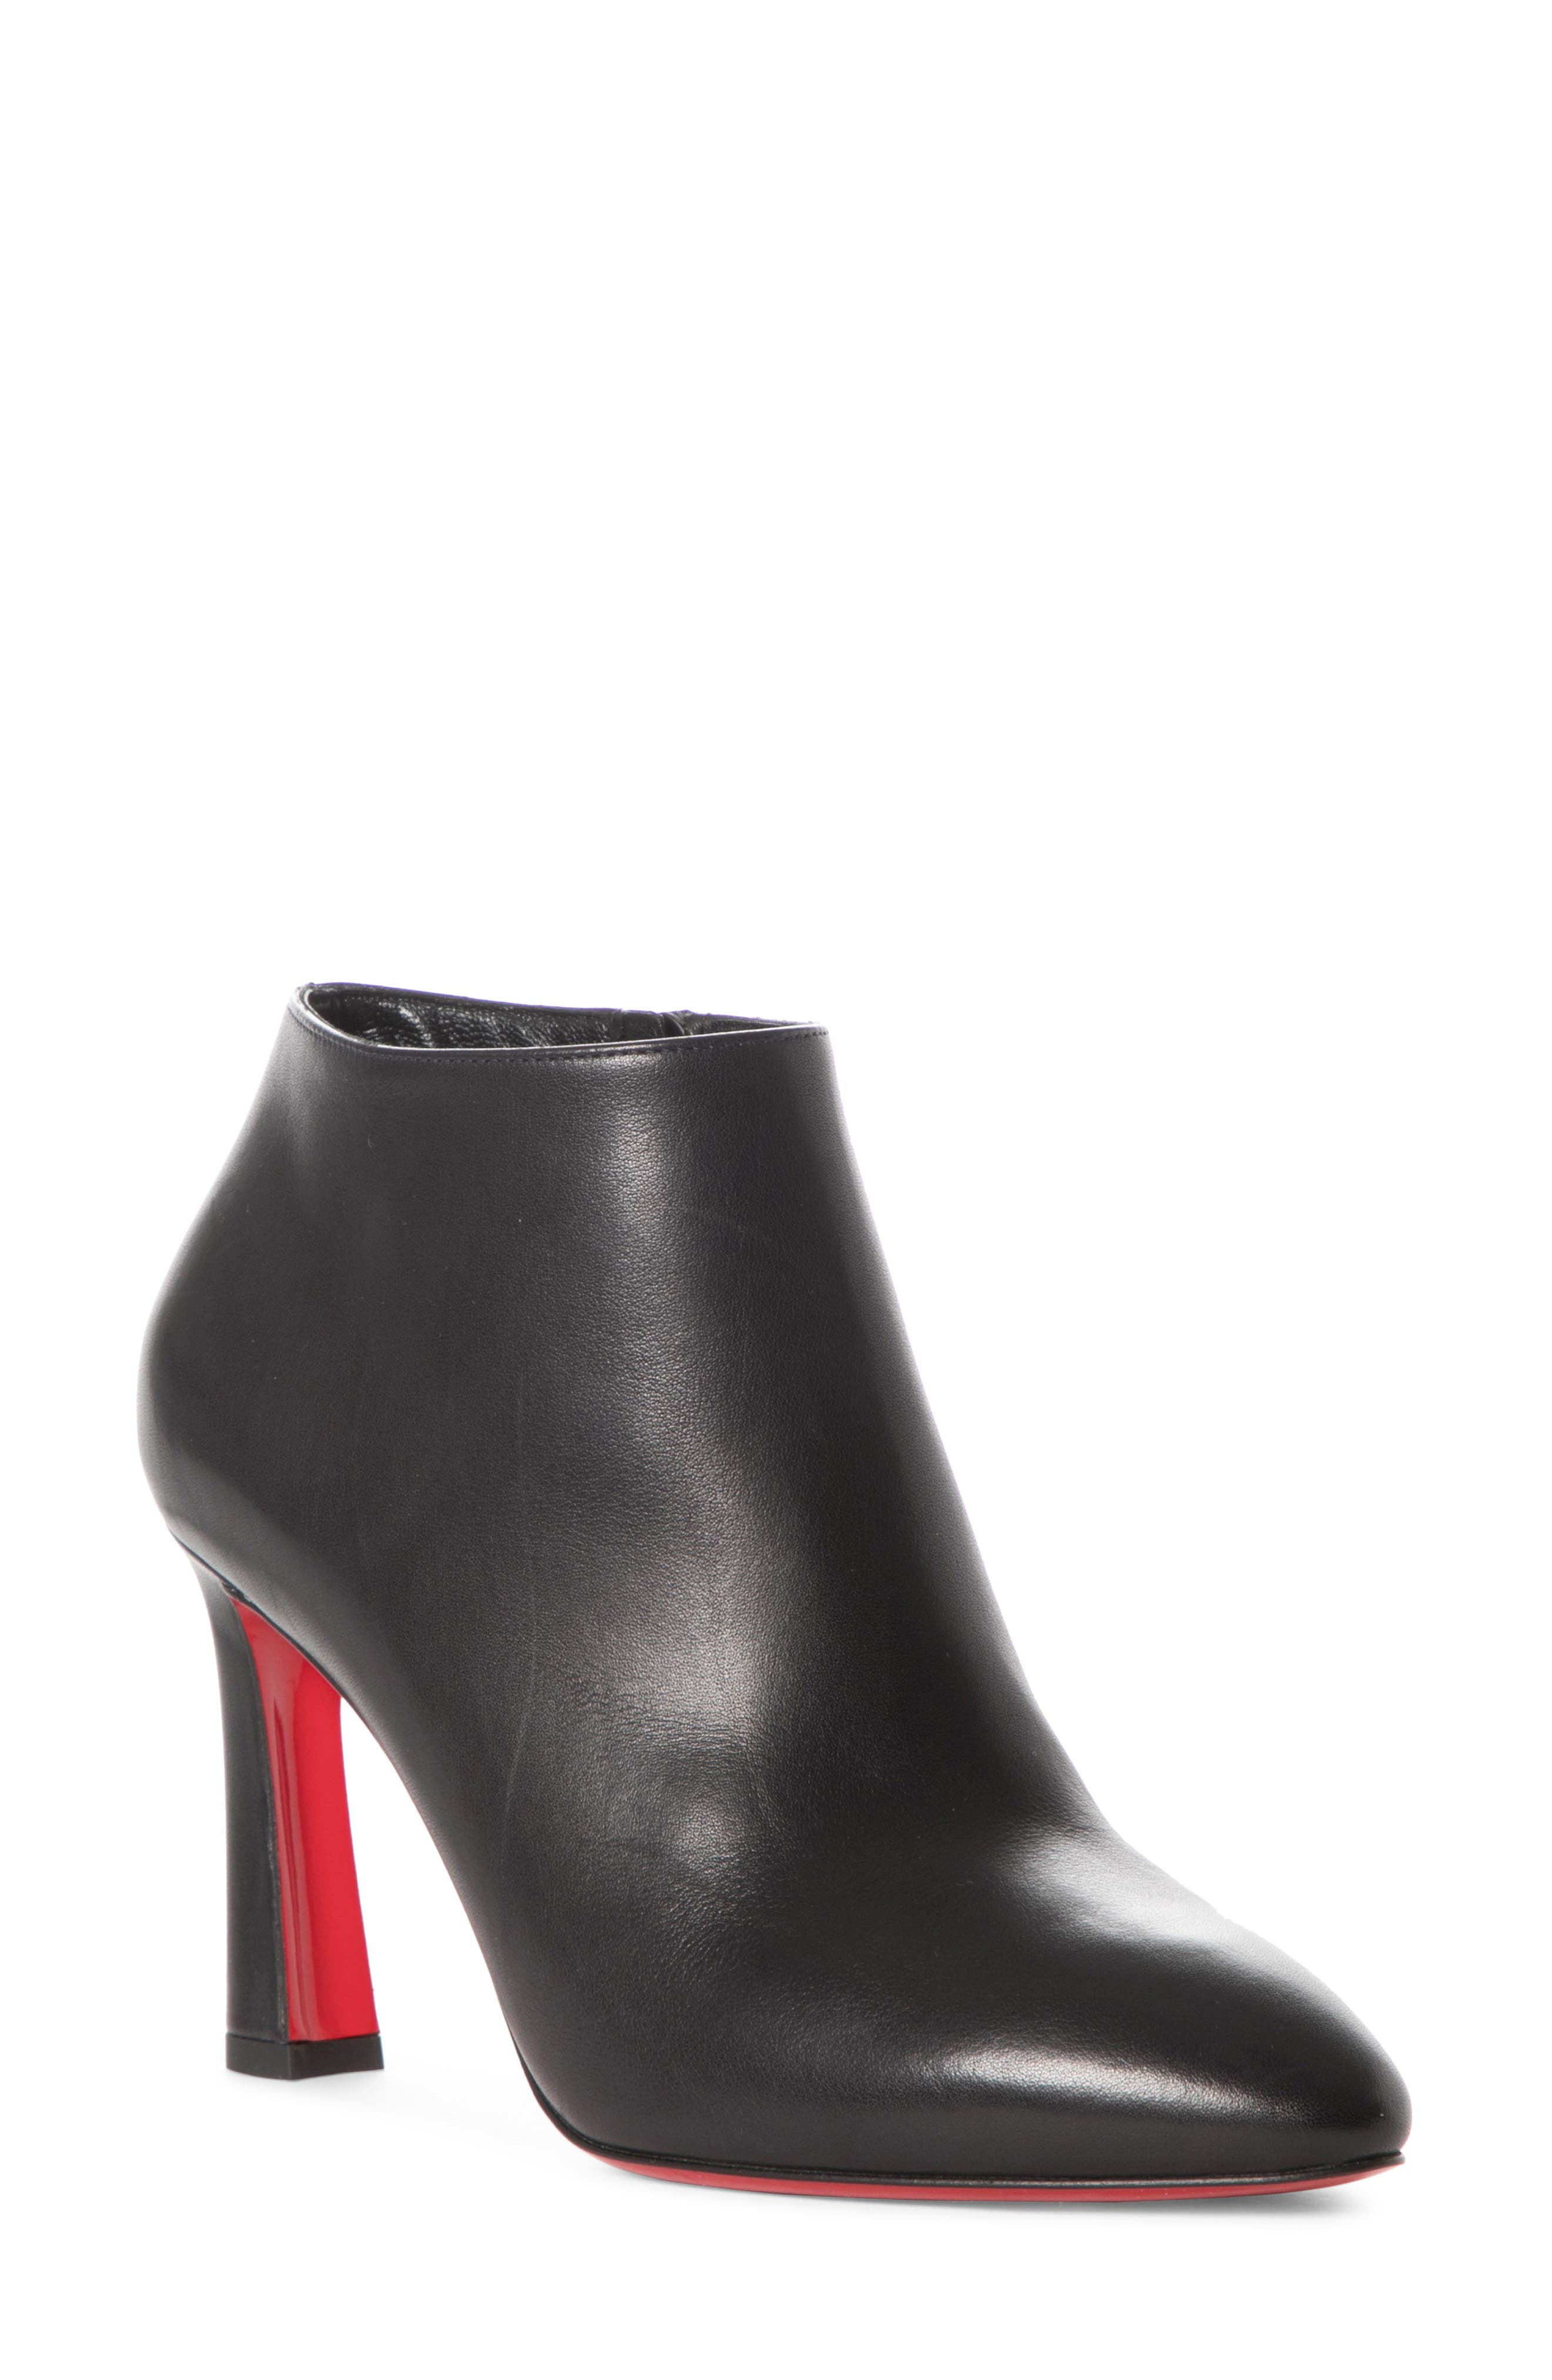 Sleek and sophisticated, this smooth leather bootie is set on a modern flared heel and finished with logo hardware and that iconic Louboutin-red sole. Style Name: Christian Louboutin Eleonor Bootie (Women). Style Number: 6046881. Available in stores.